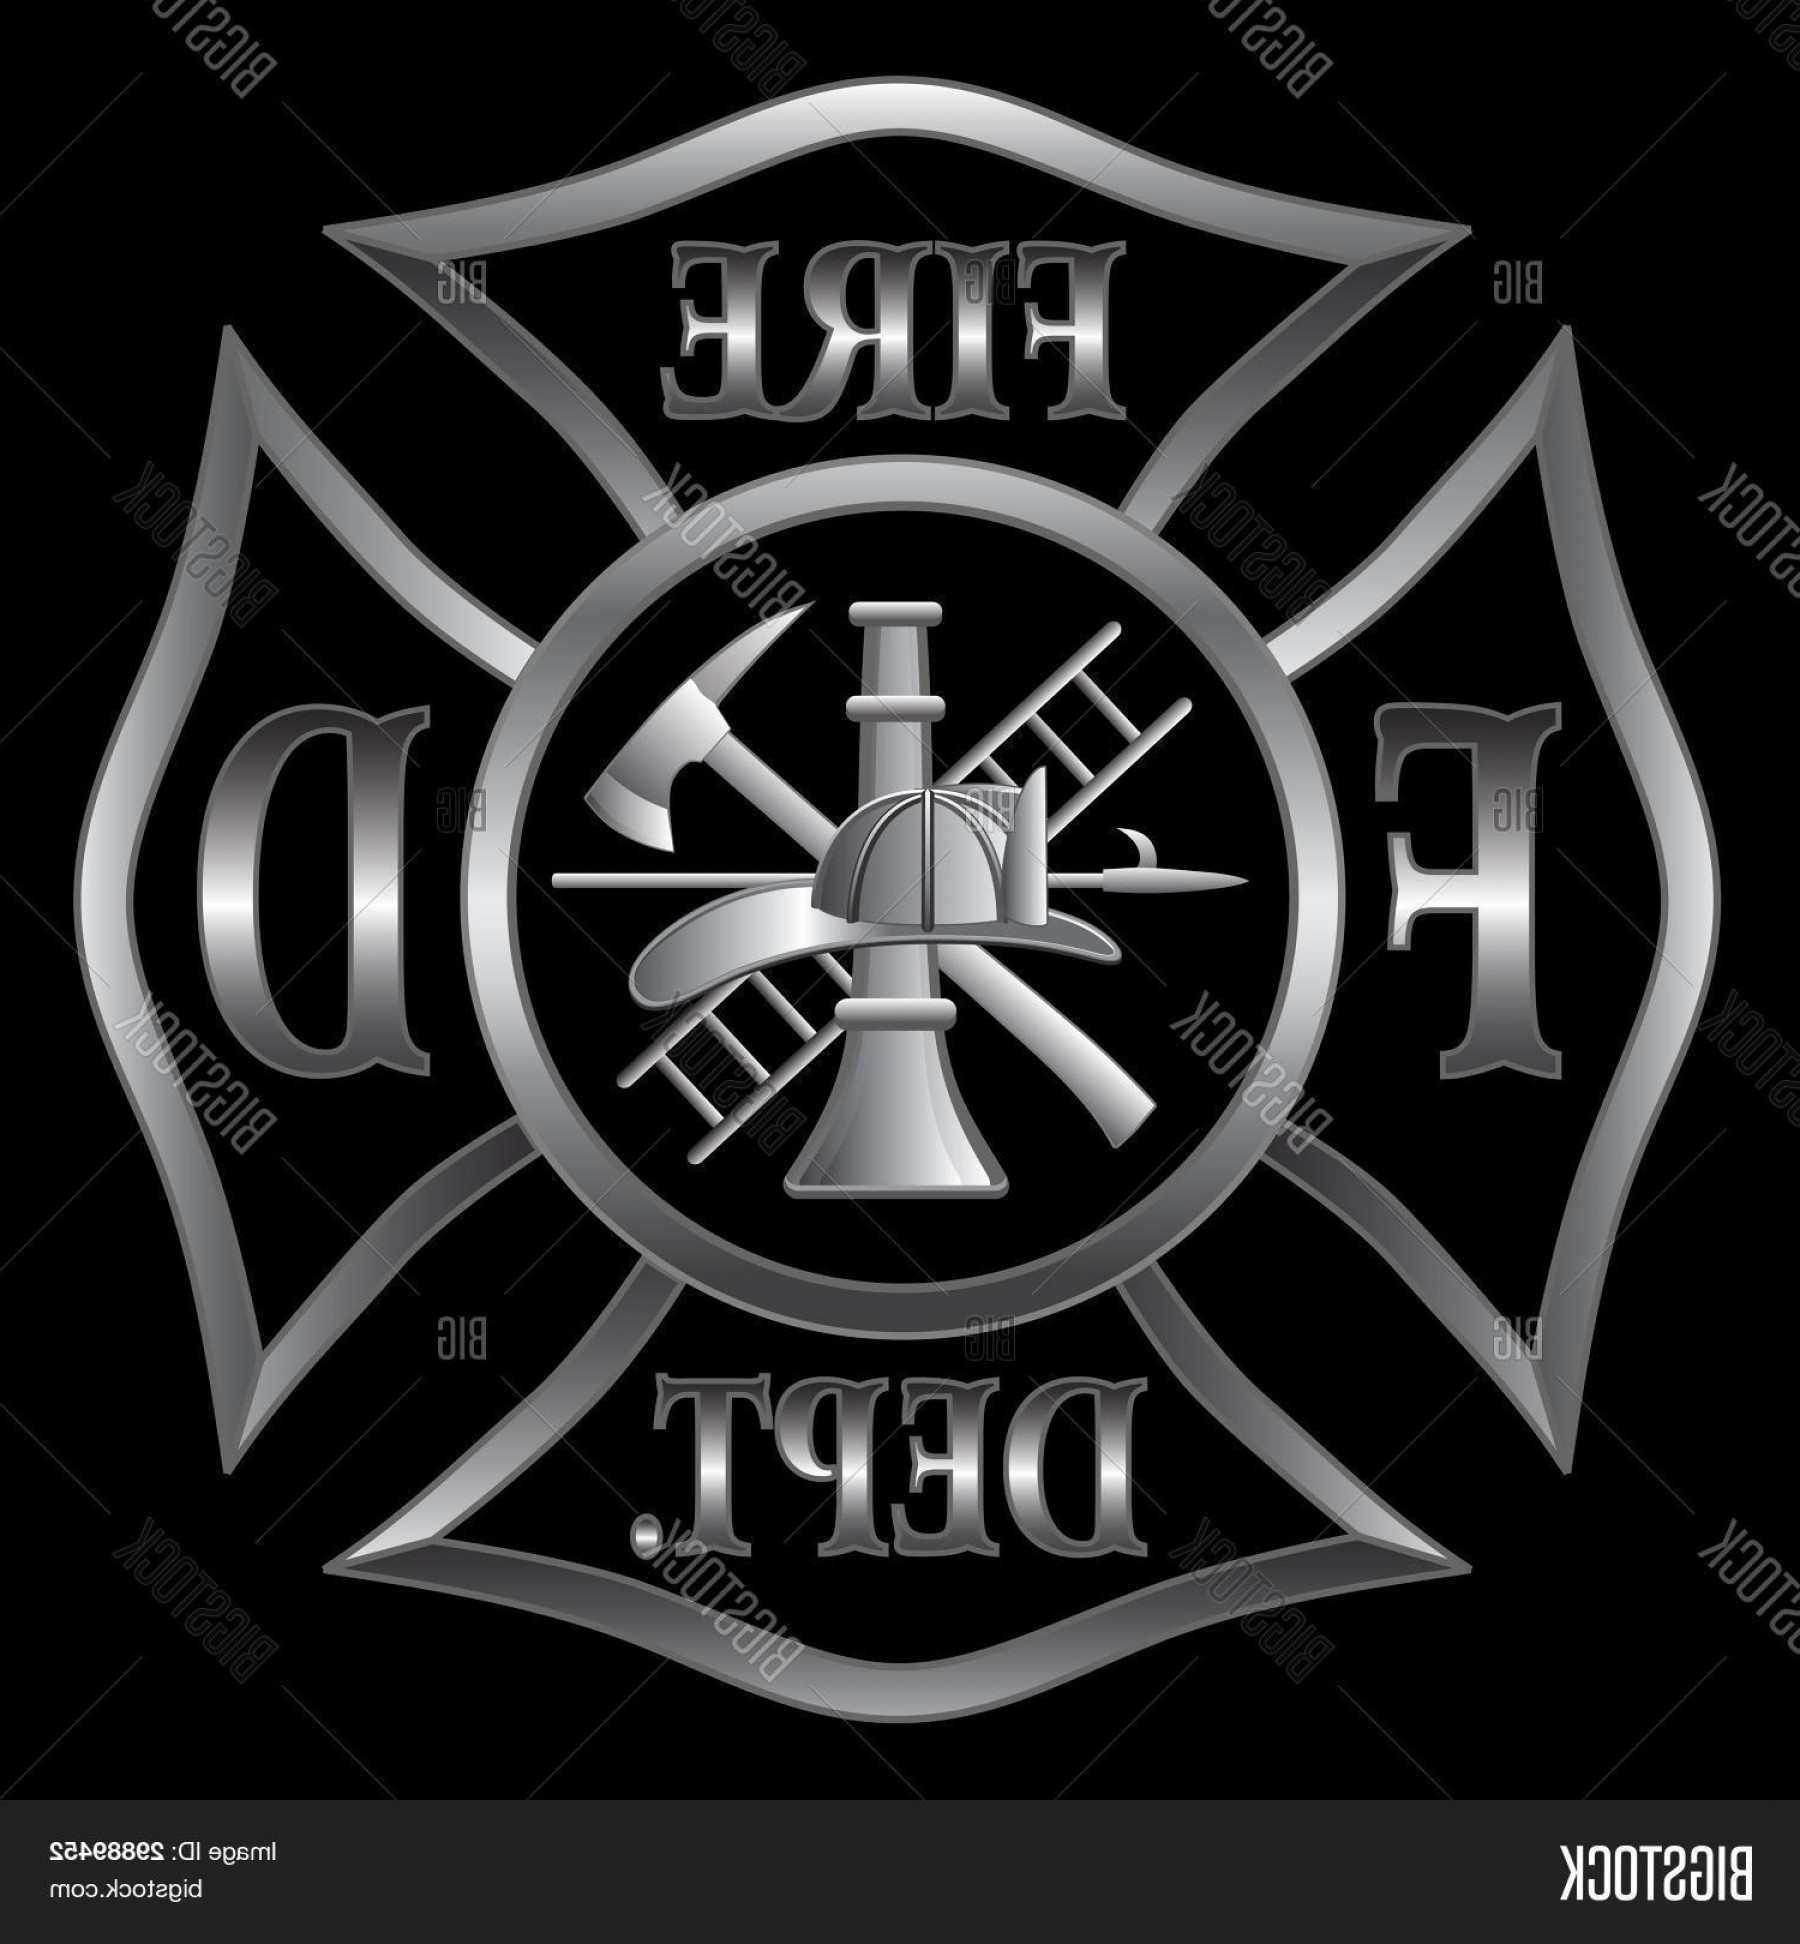 Fire Maltese Vector: Stock Vector Fire Department Maltese Cross Silver